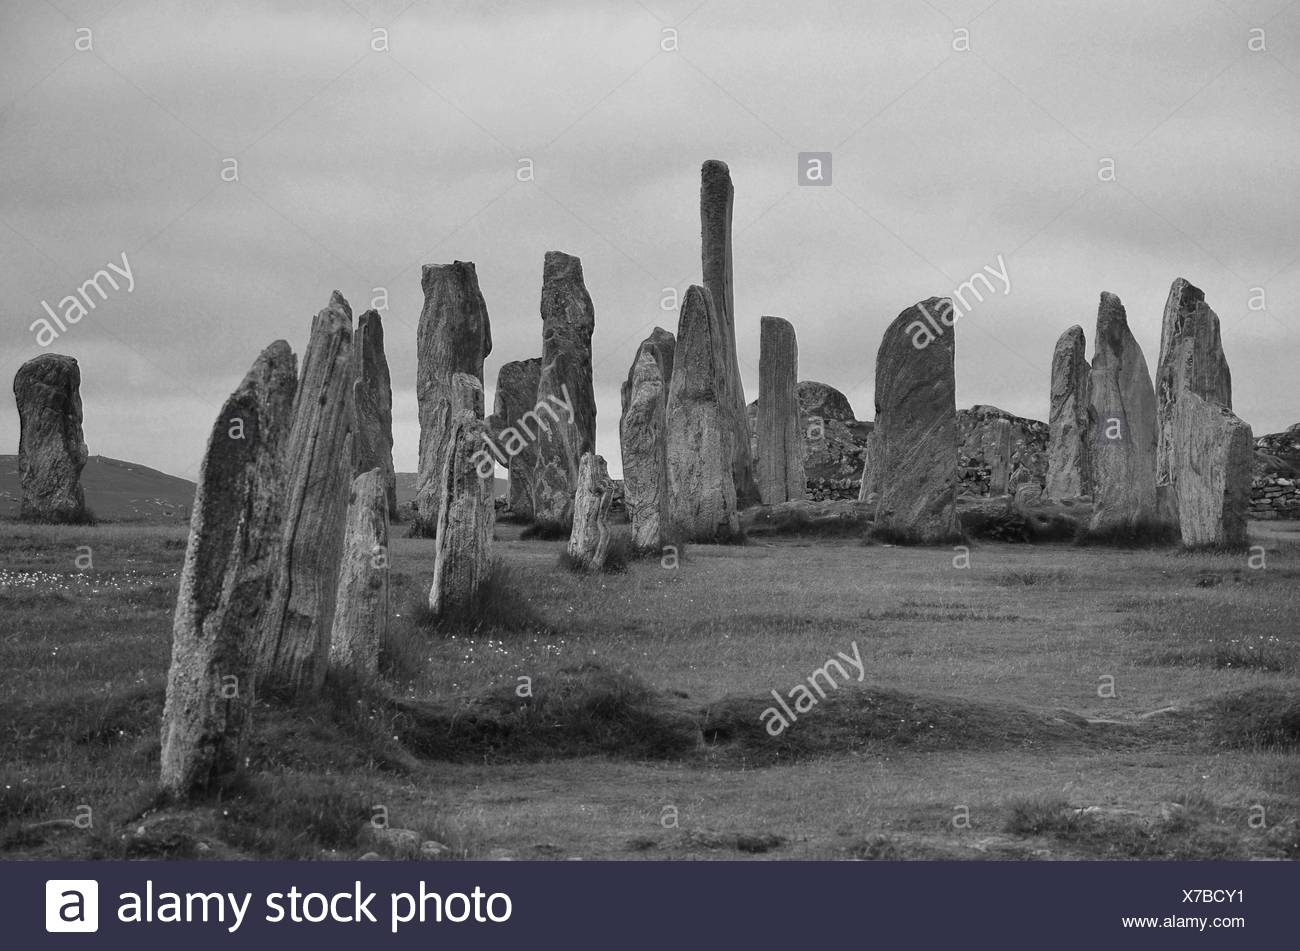 Scotland, lewis, megaliths, standing stones, stone circle, menhirs, callanish, Outer Hebrides, Hebrides, Great Britain, Europe, - Stock Image